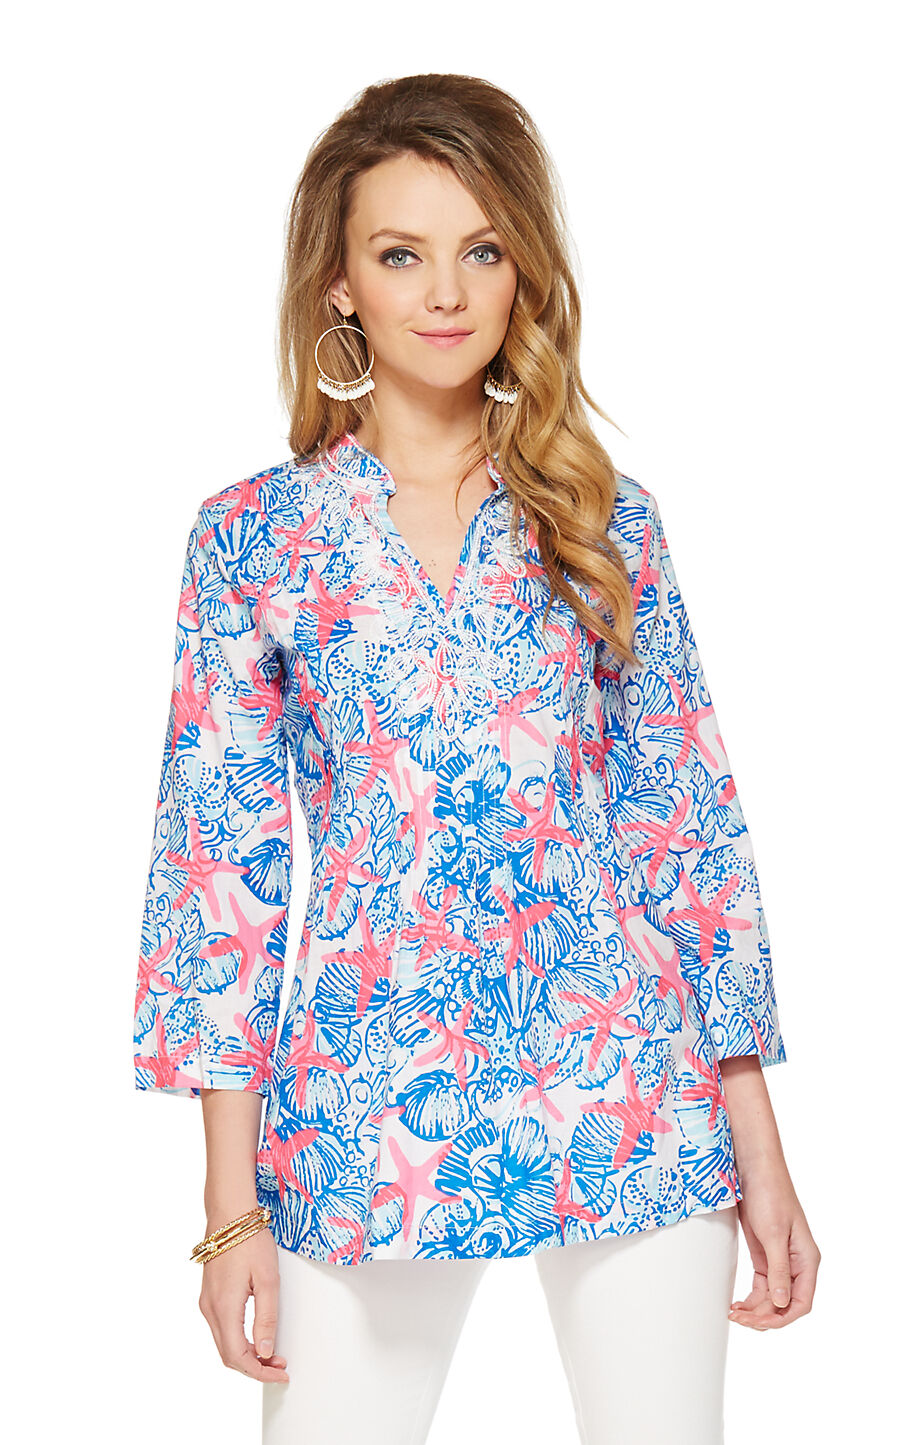 Nuevo Lilly Pulitzer Sarasota Túnica Resort whiteo She She Conchas Top